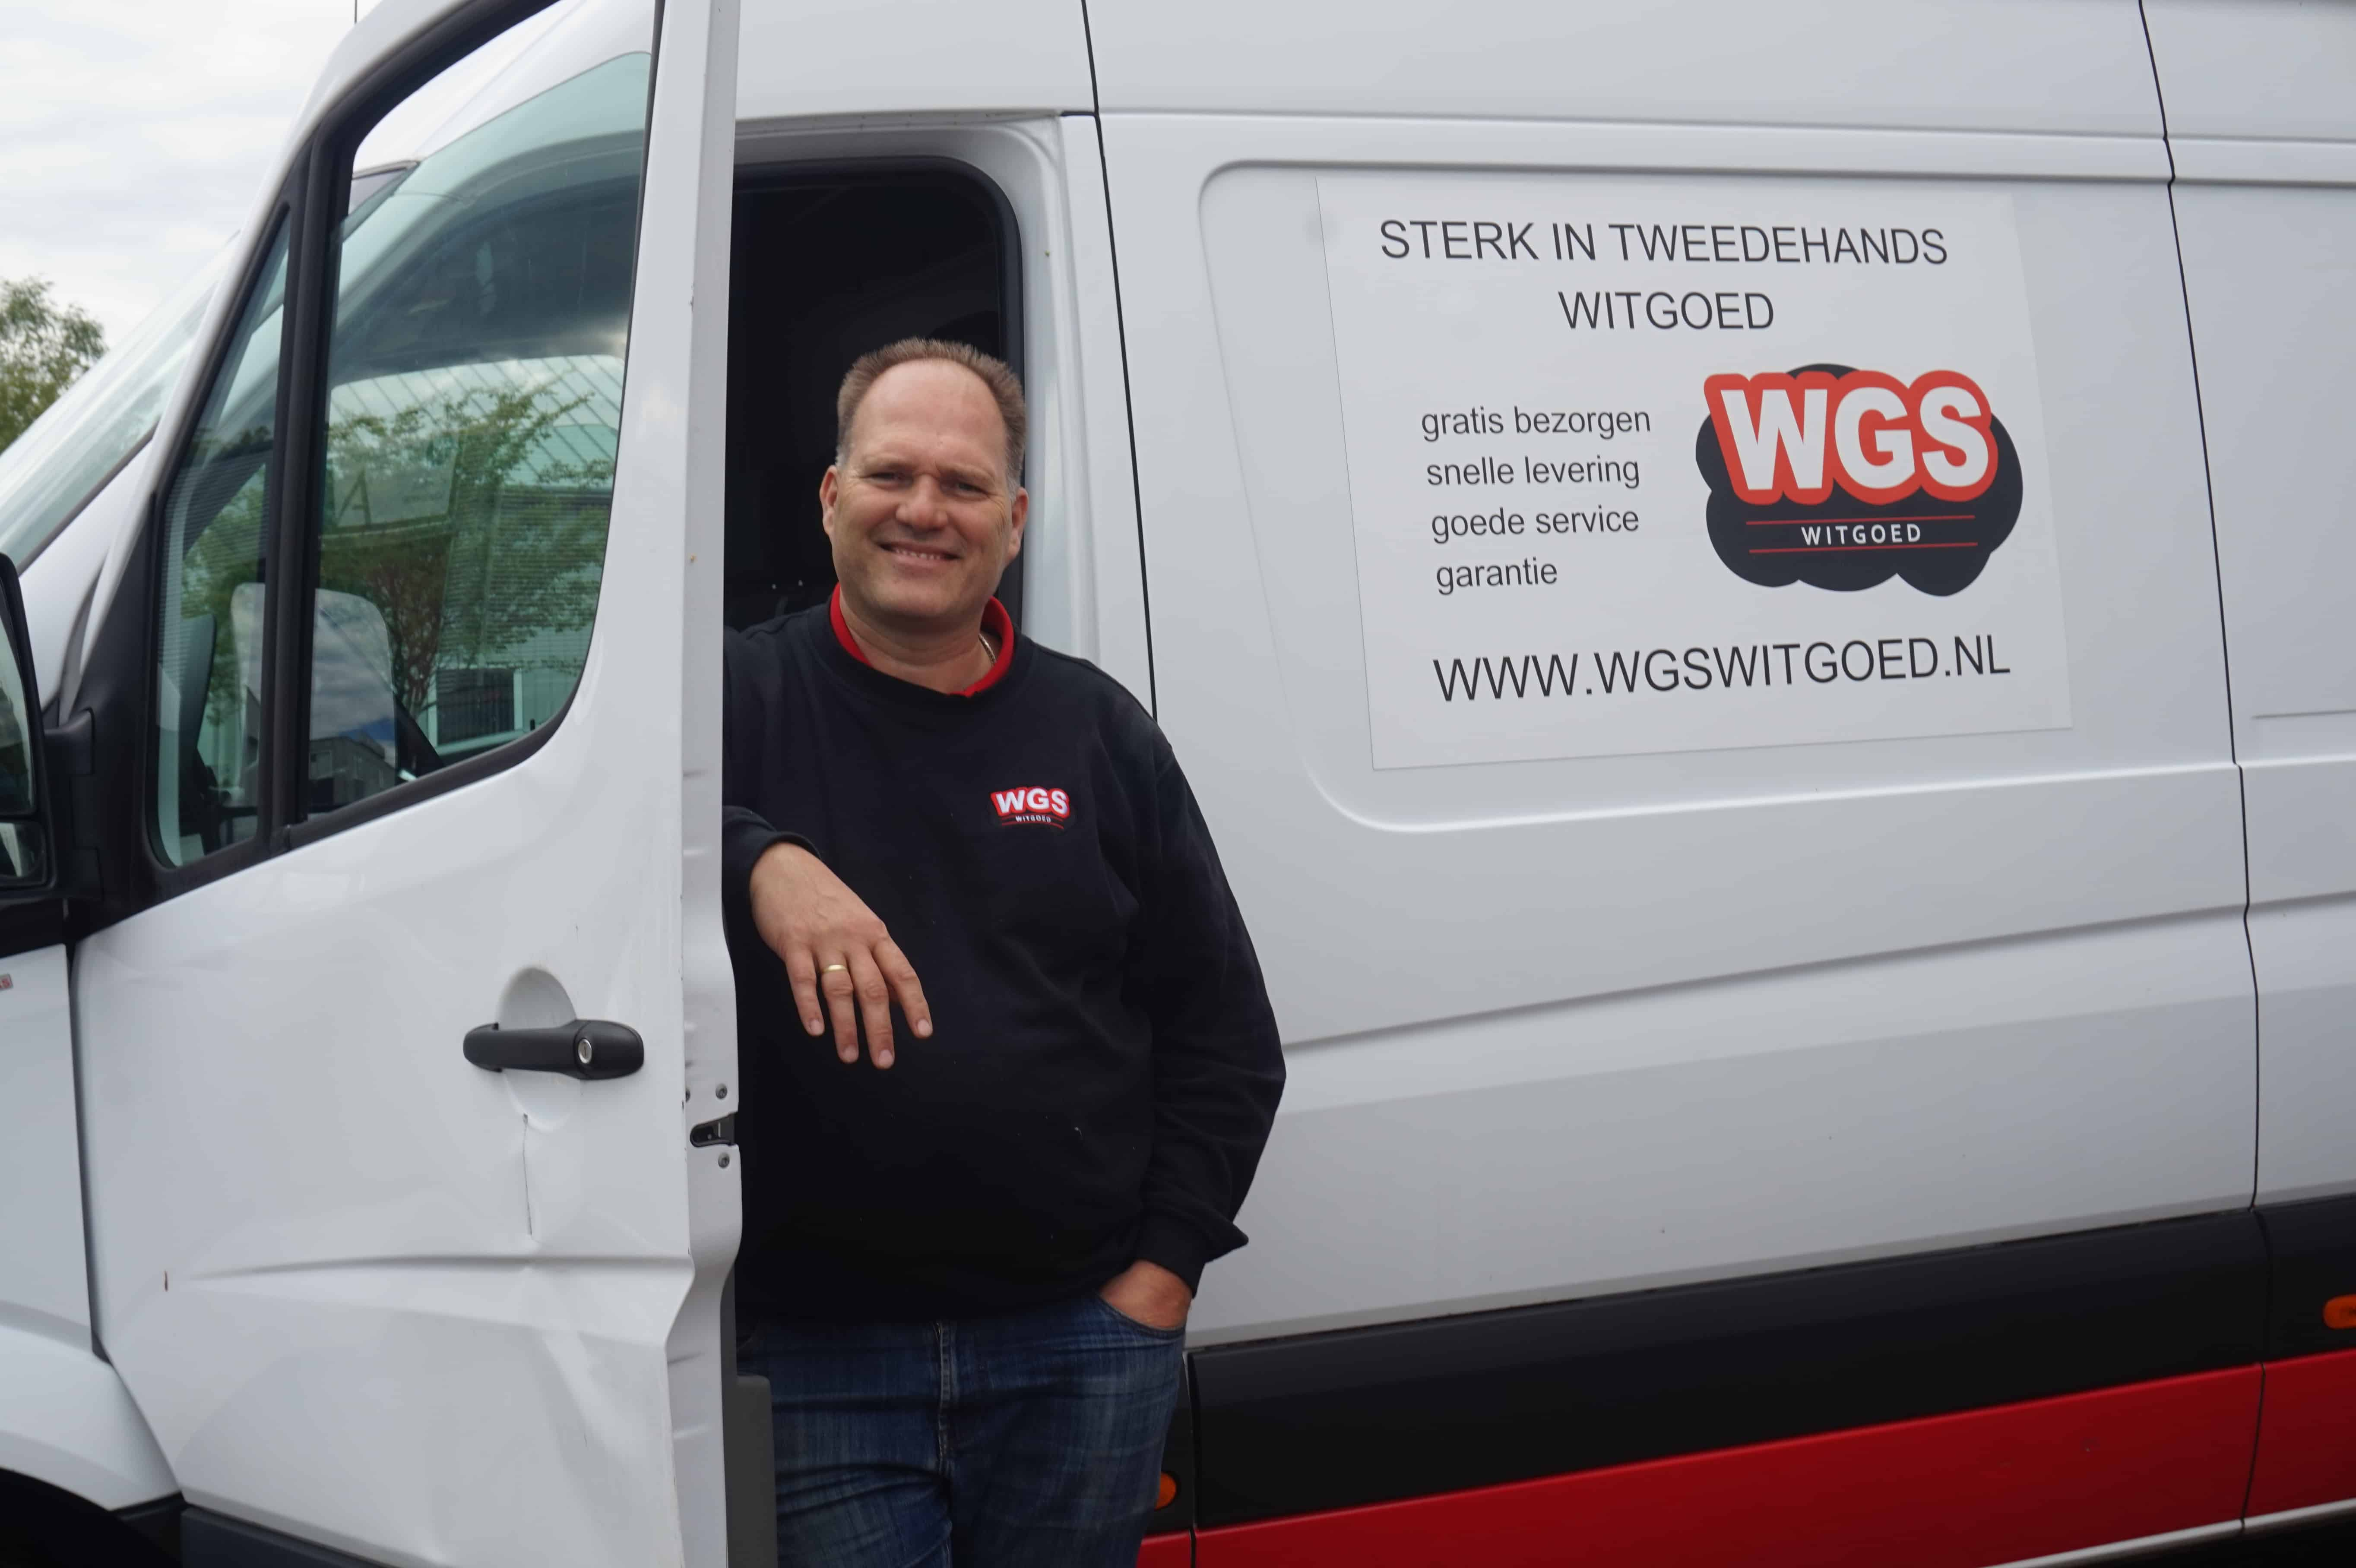 WGS Witgoed bus